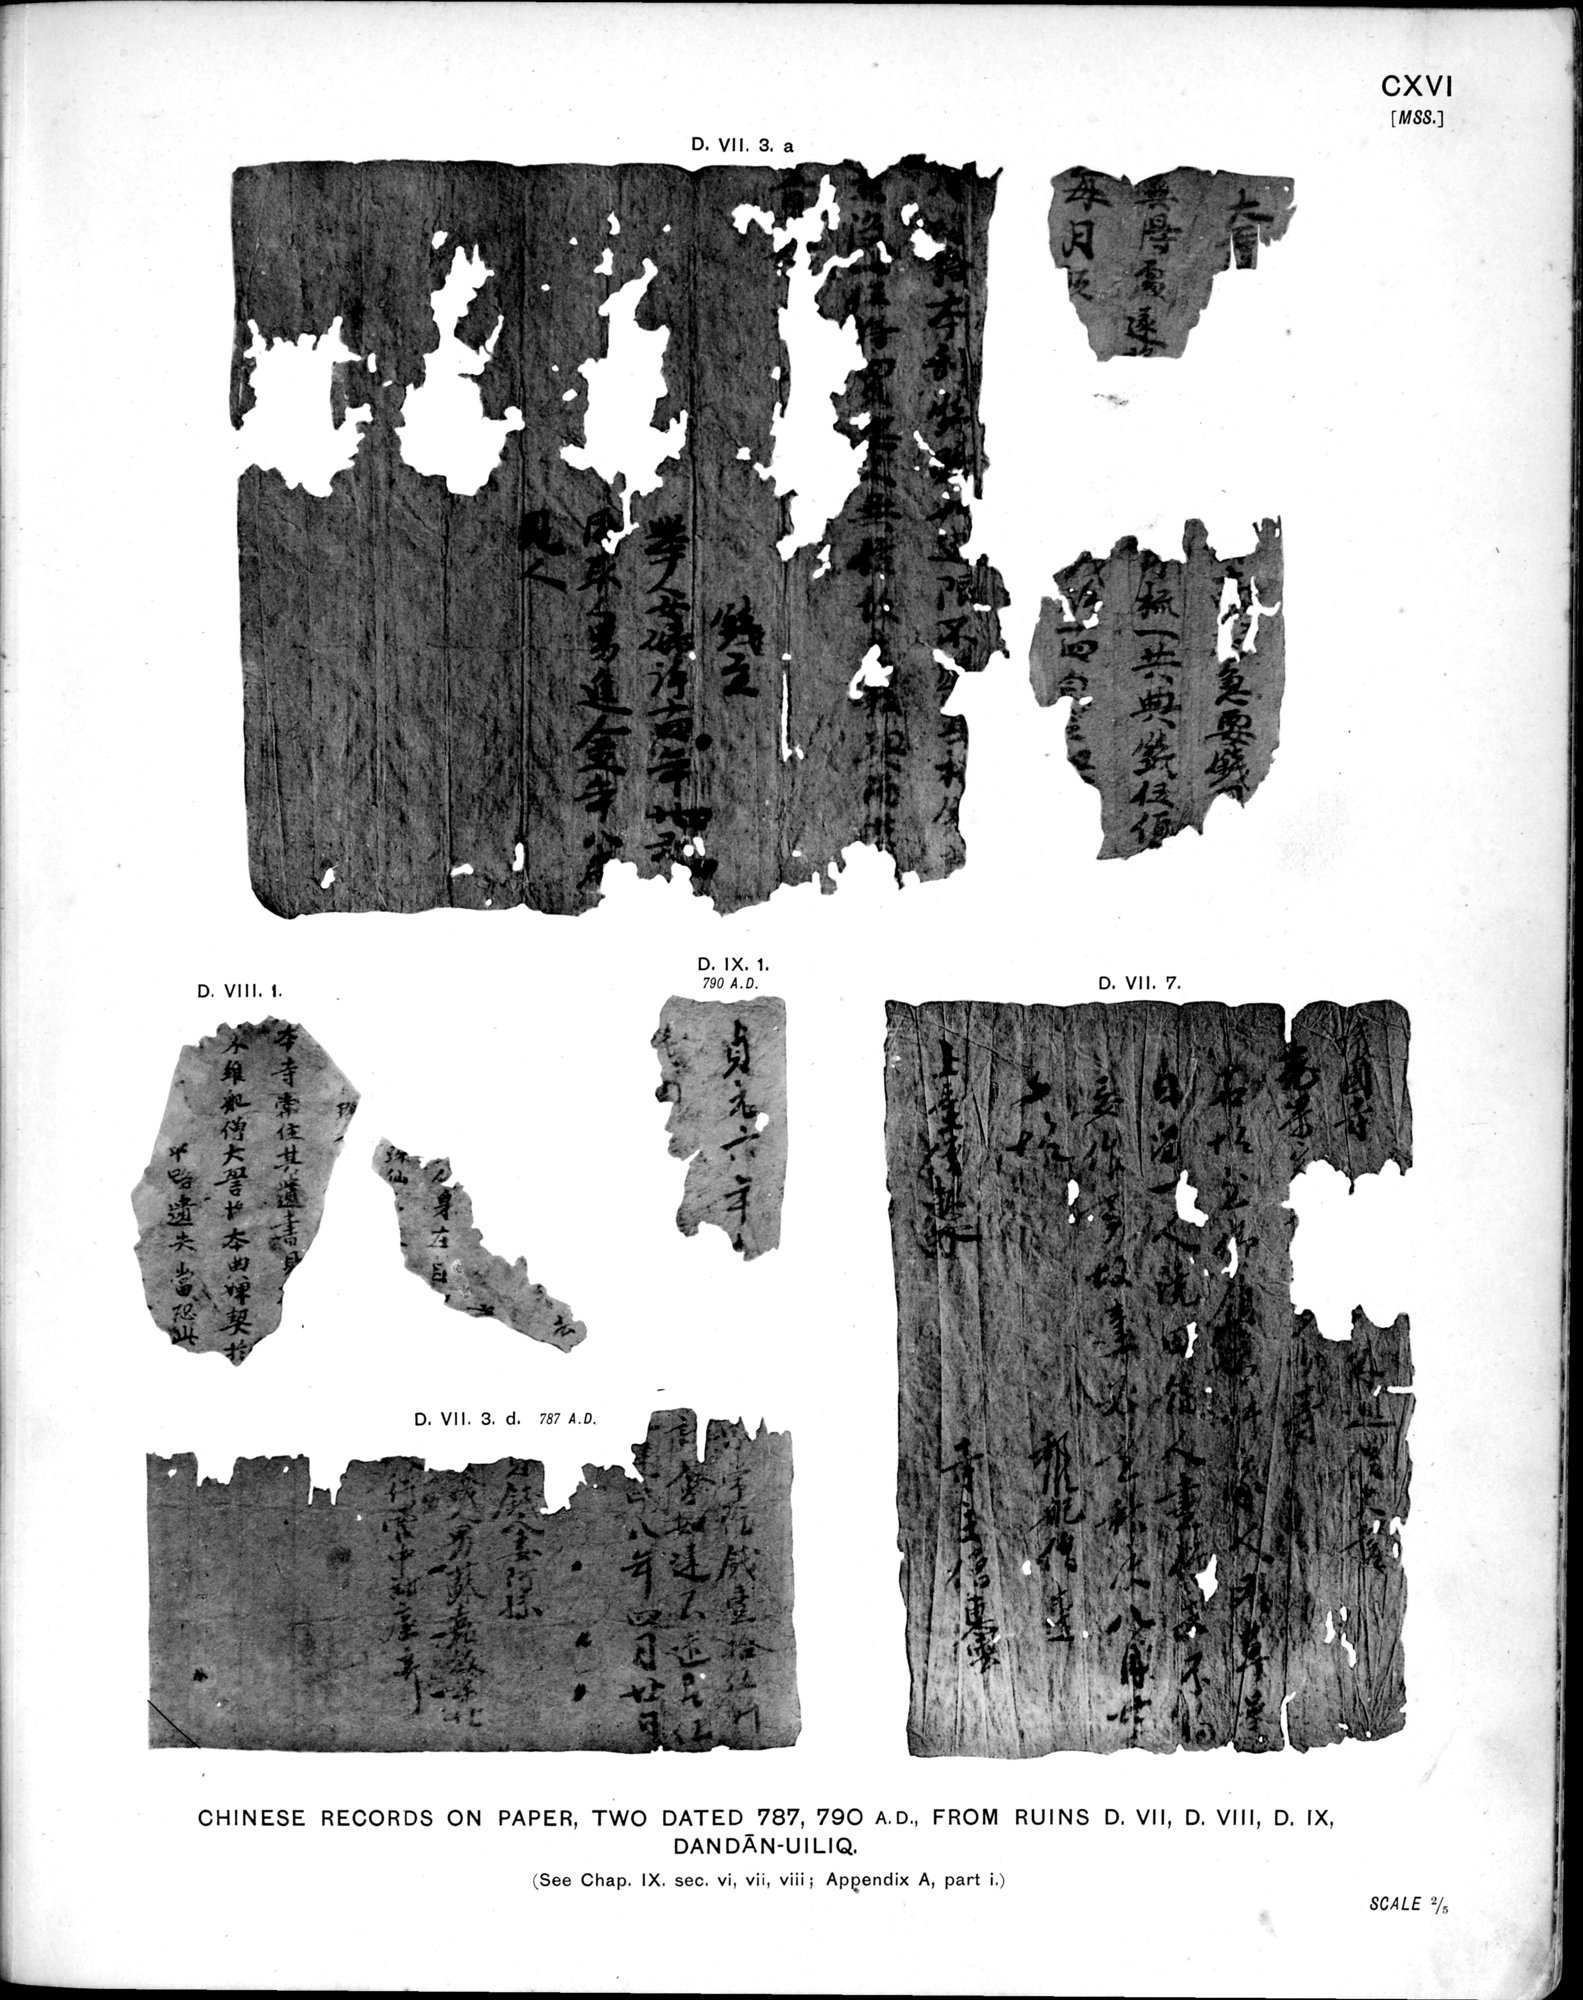 Ancient Khotan : vol.2 / Page 243 (Grayscale High Resolution Image)